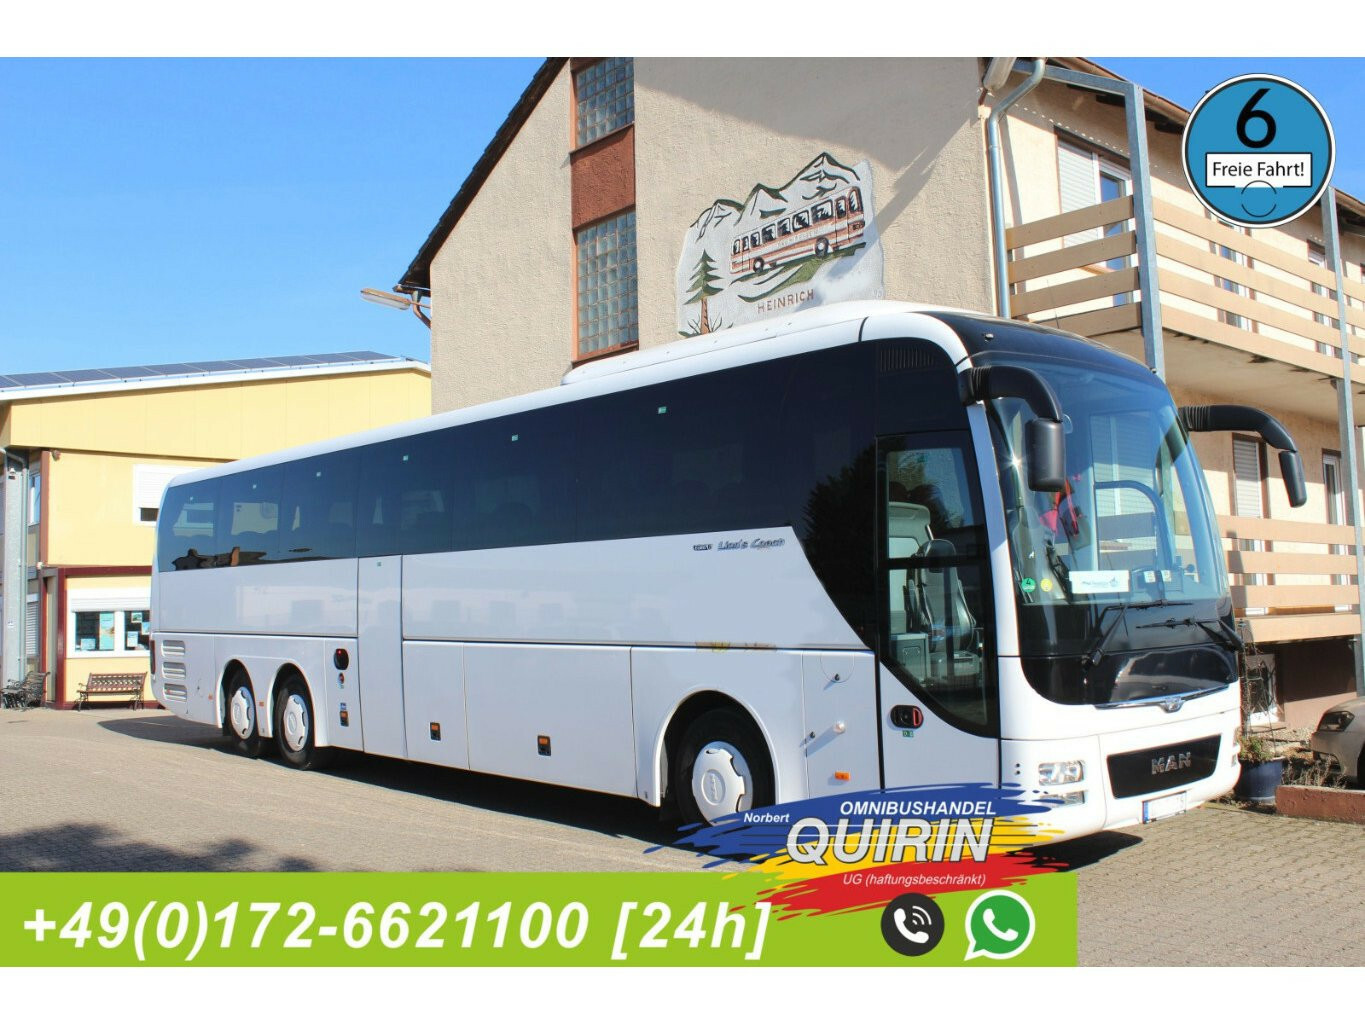 MAN R 08 Lions Coach (61 SS + 13 Stehpl.) Euro 6 Reisebus mit Busleasing.